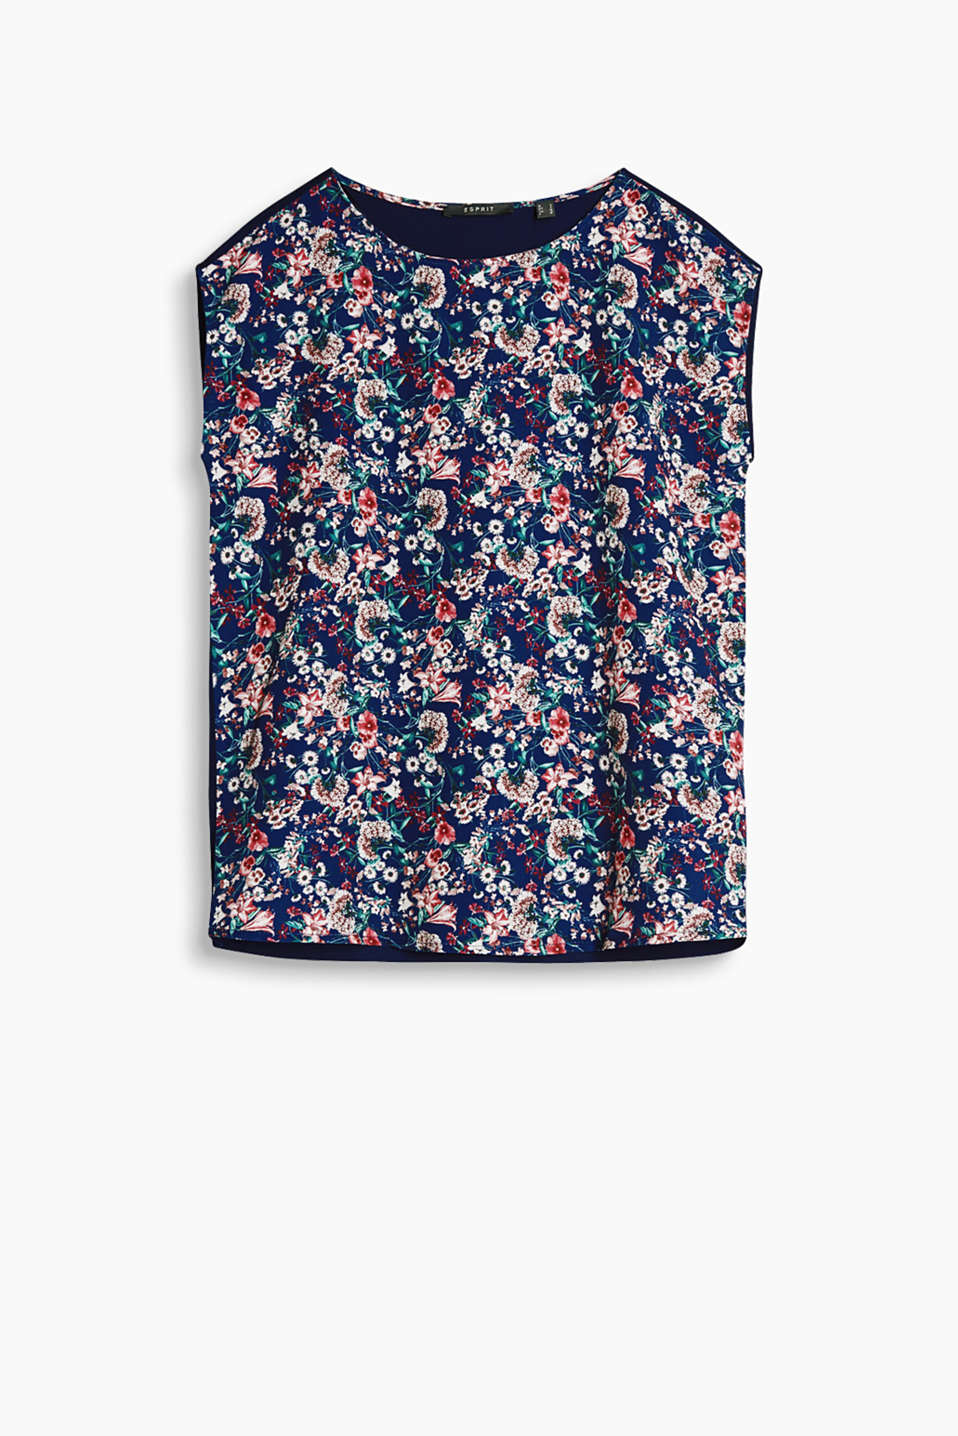 Feminine blouse top in an airy material mix with a floral print